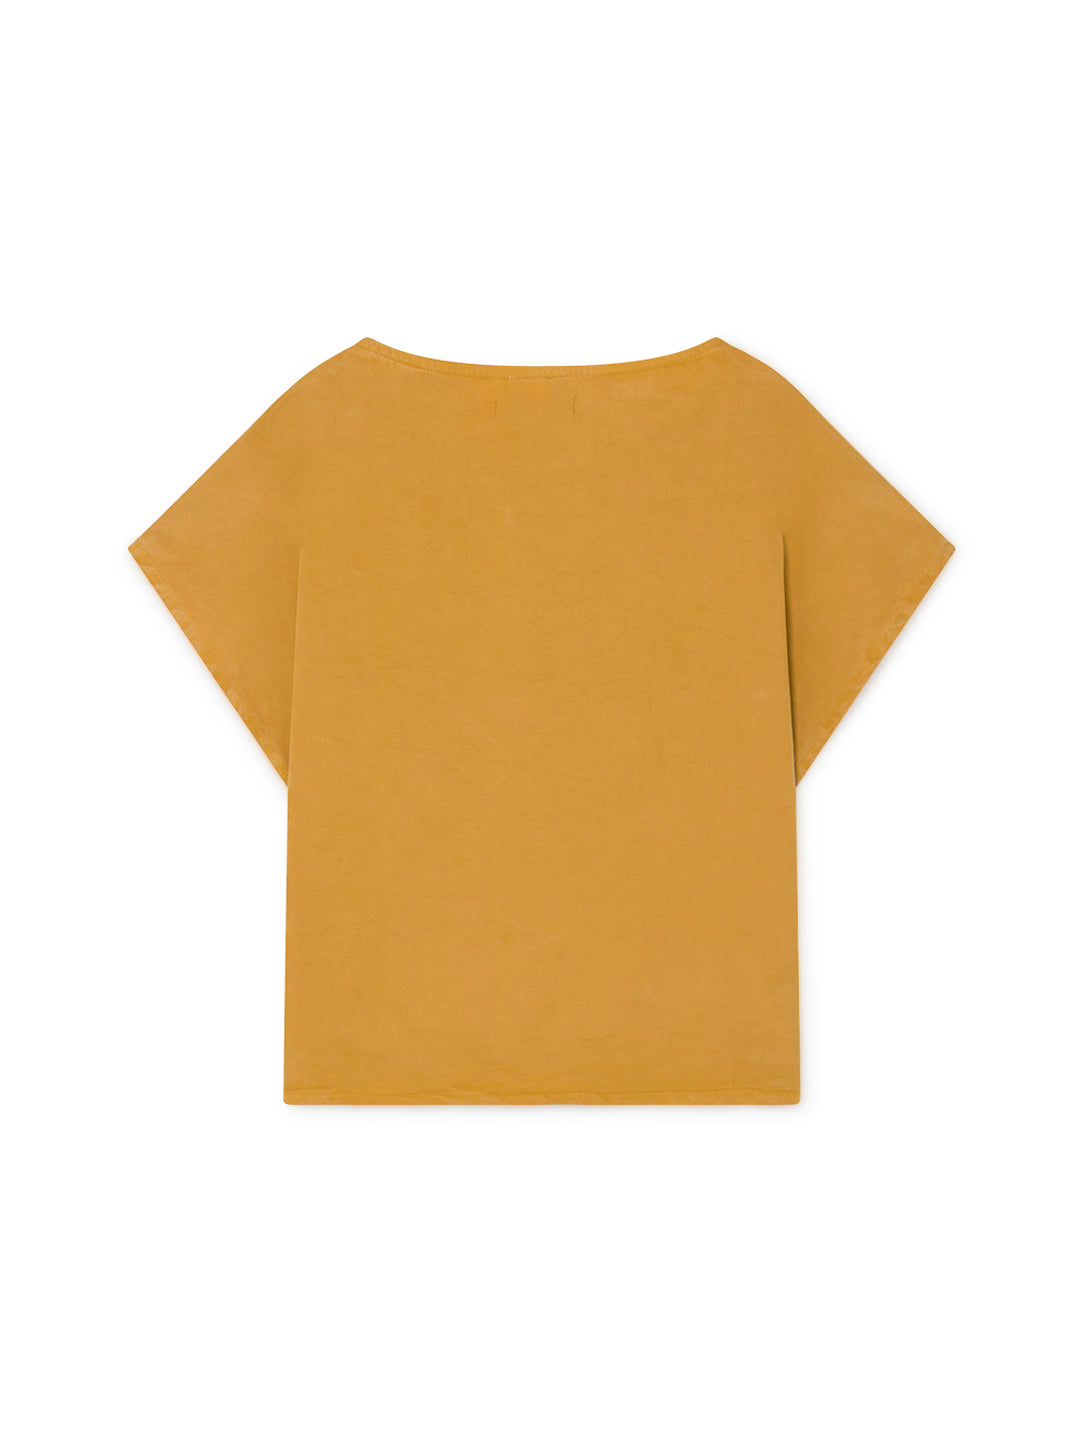 TWOTHIRDS Womens Top: Guafo - Mustard back